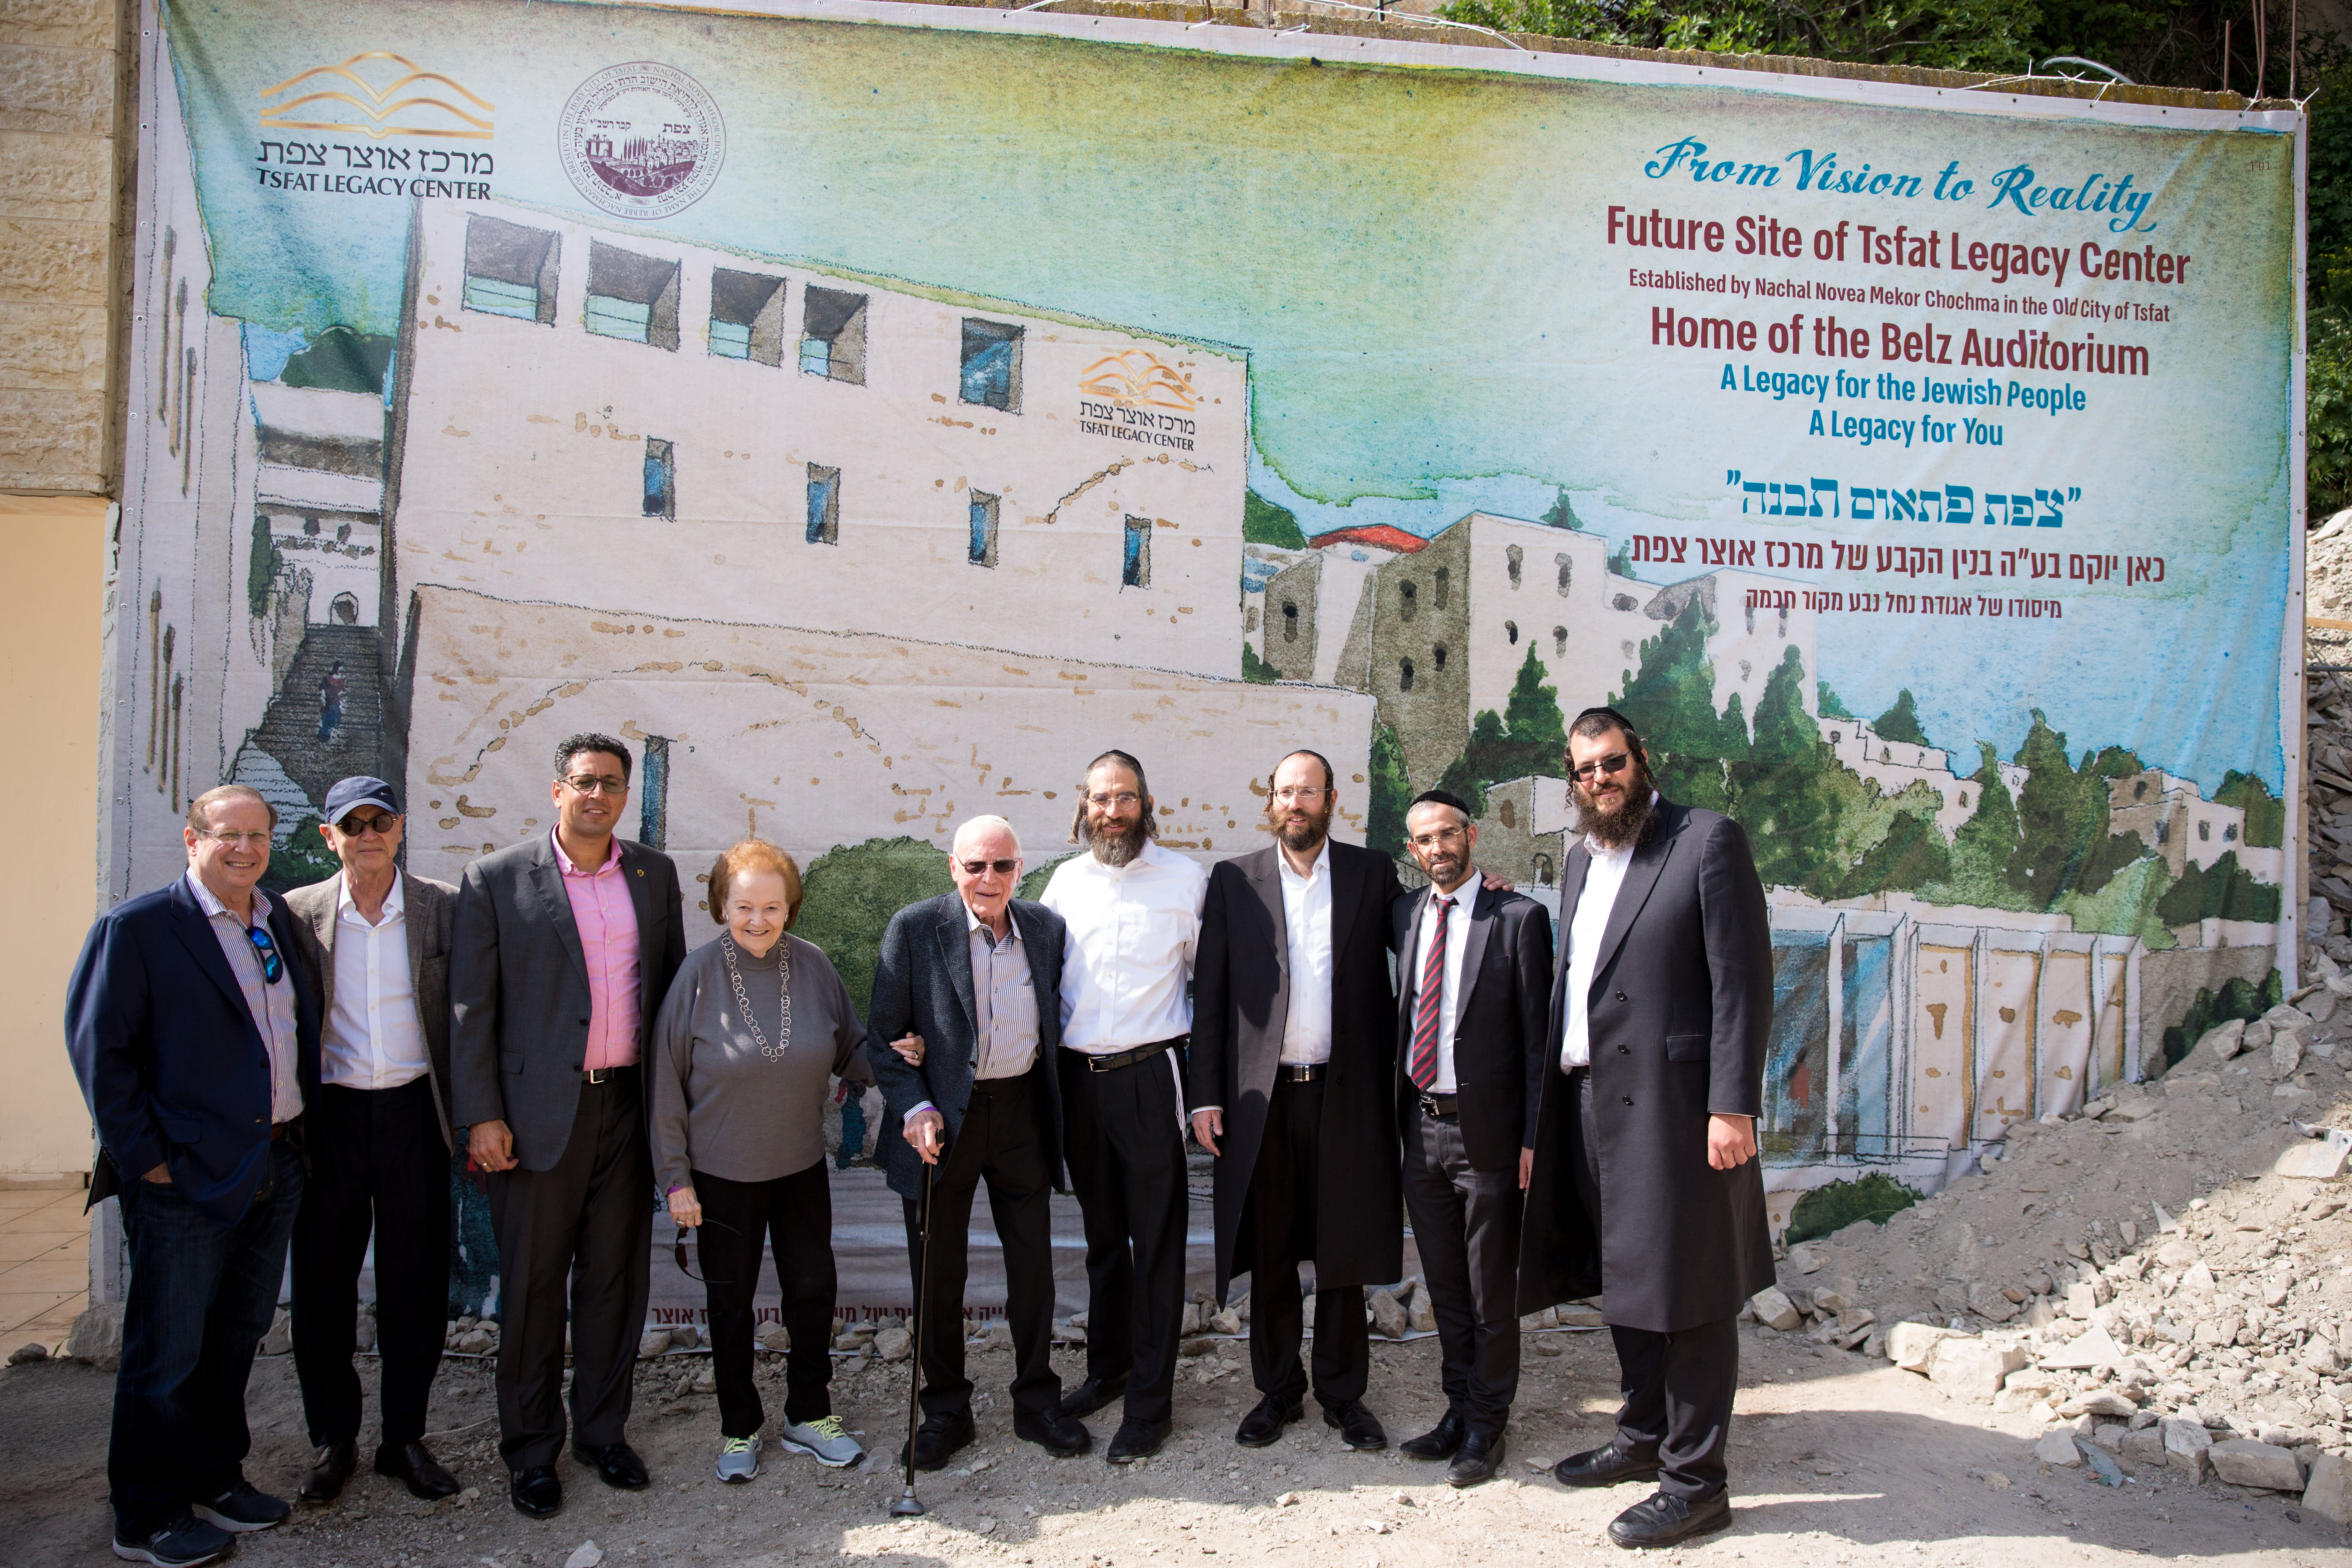 Mr. and Mrs. Jack Belz, Founding Supporters; Ilan Shohat, Safed Mayor and Simcha Mirvis, Director at the legacy center dedication in Safed (NOAM DEHAN).